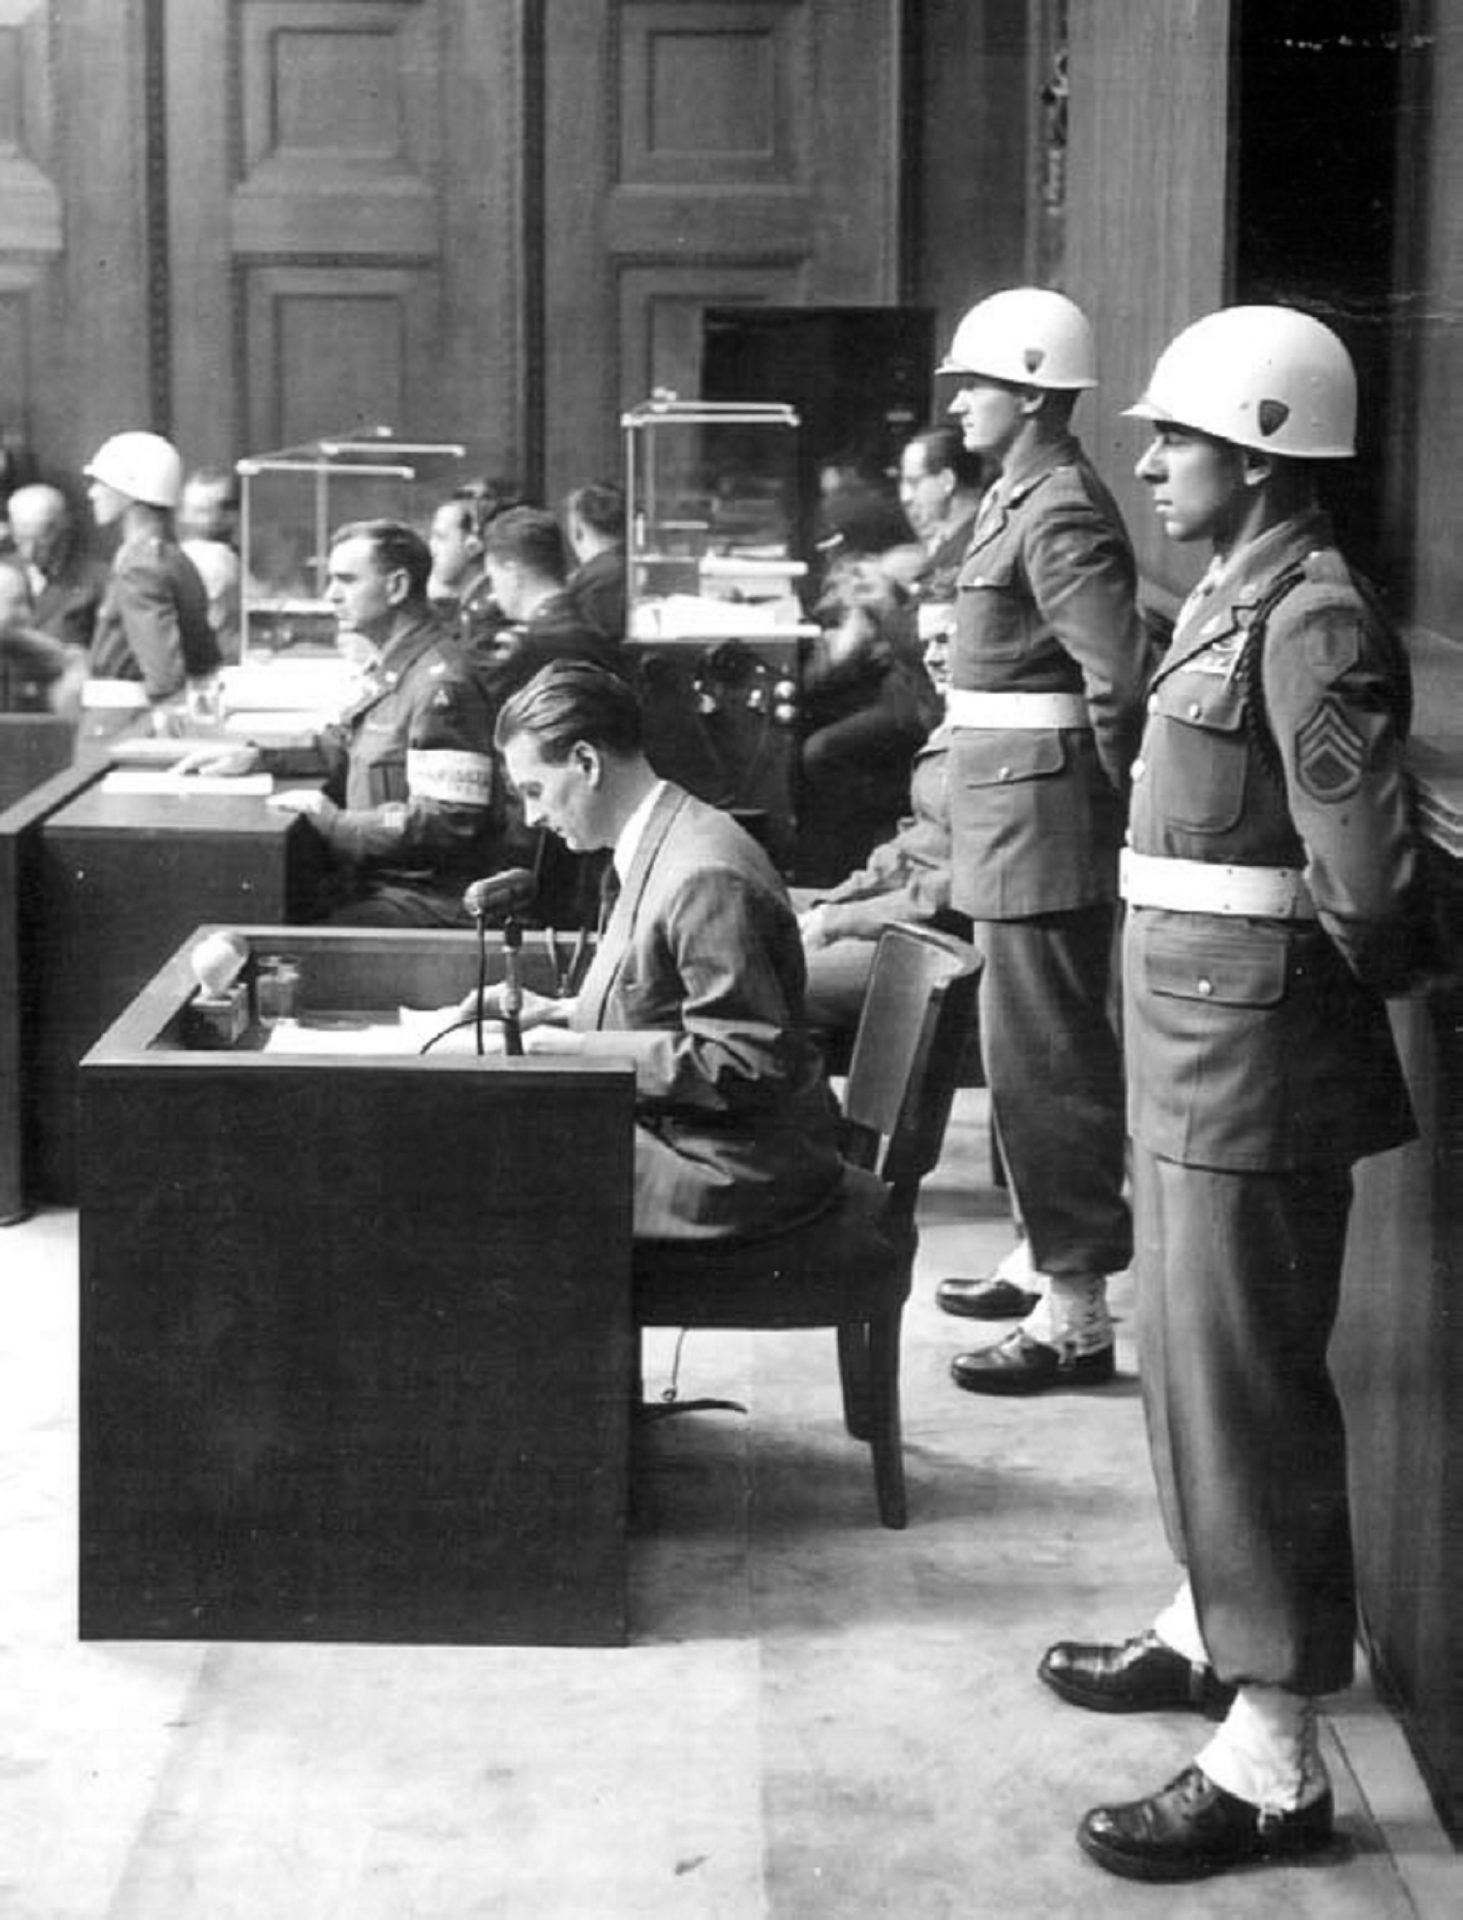 Staff Sgt. Emilio DiPalma (right) stands on guard at the Nuremberg Trials in 1945.